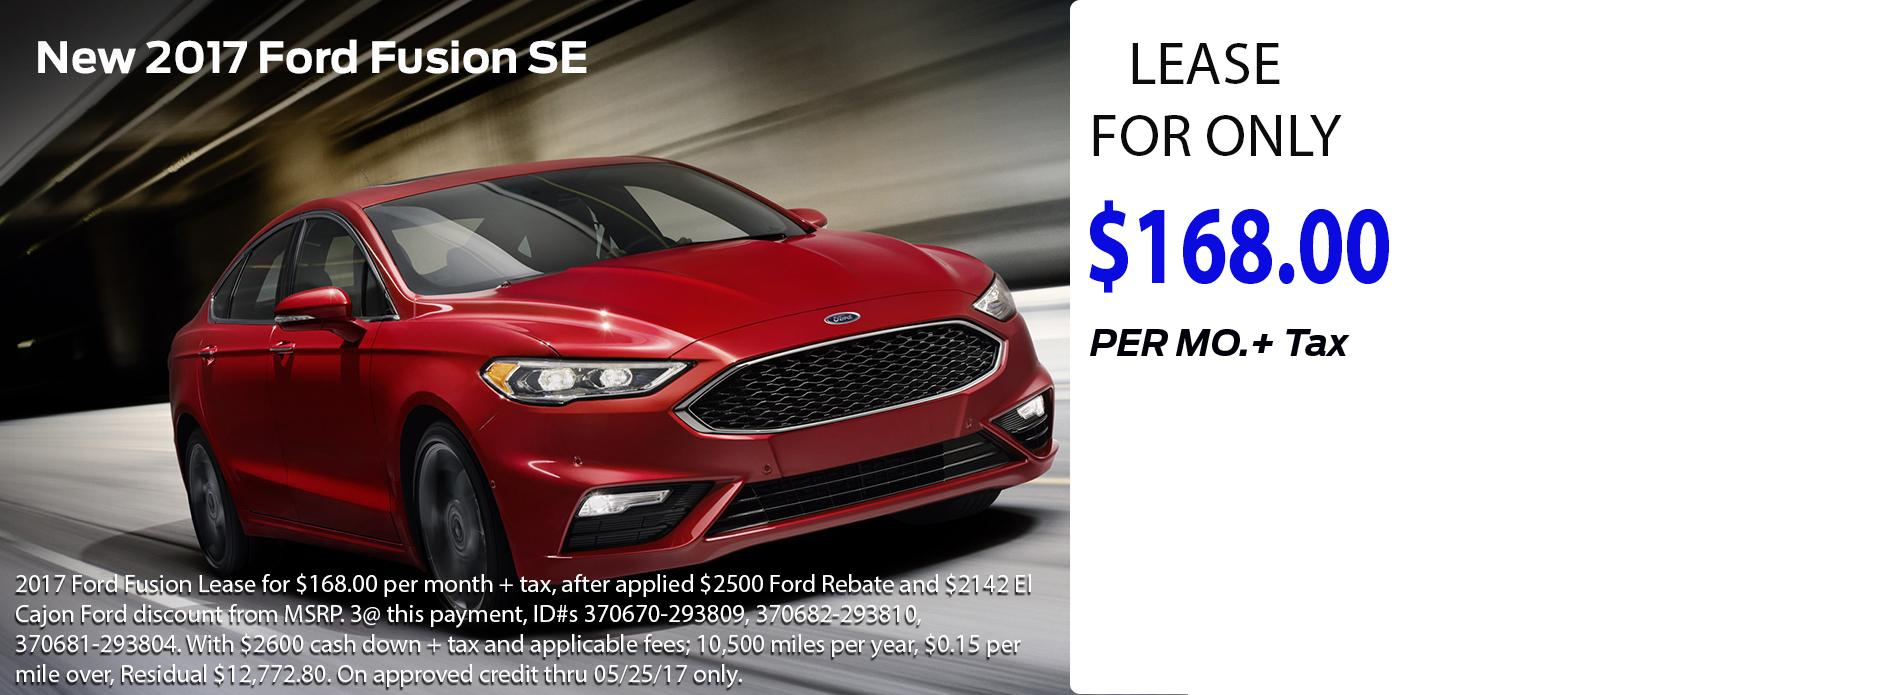 2017 Ford Fusion SE Offer